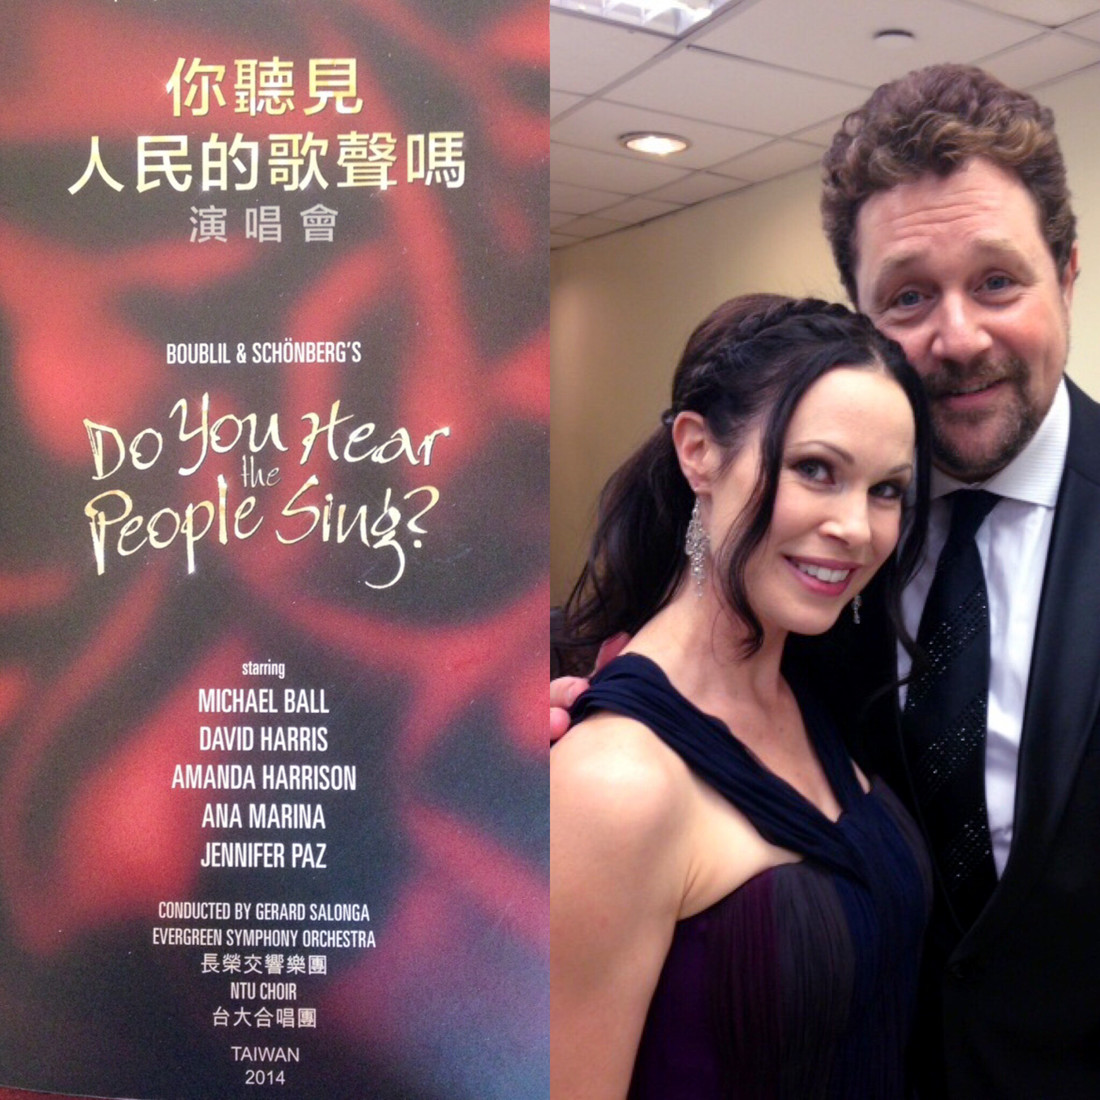 Ana Marina and Michael Ball